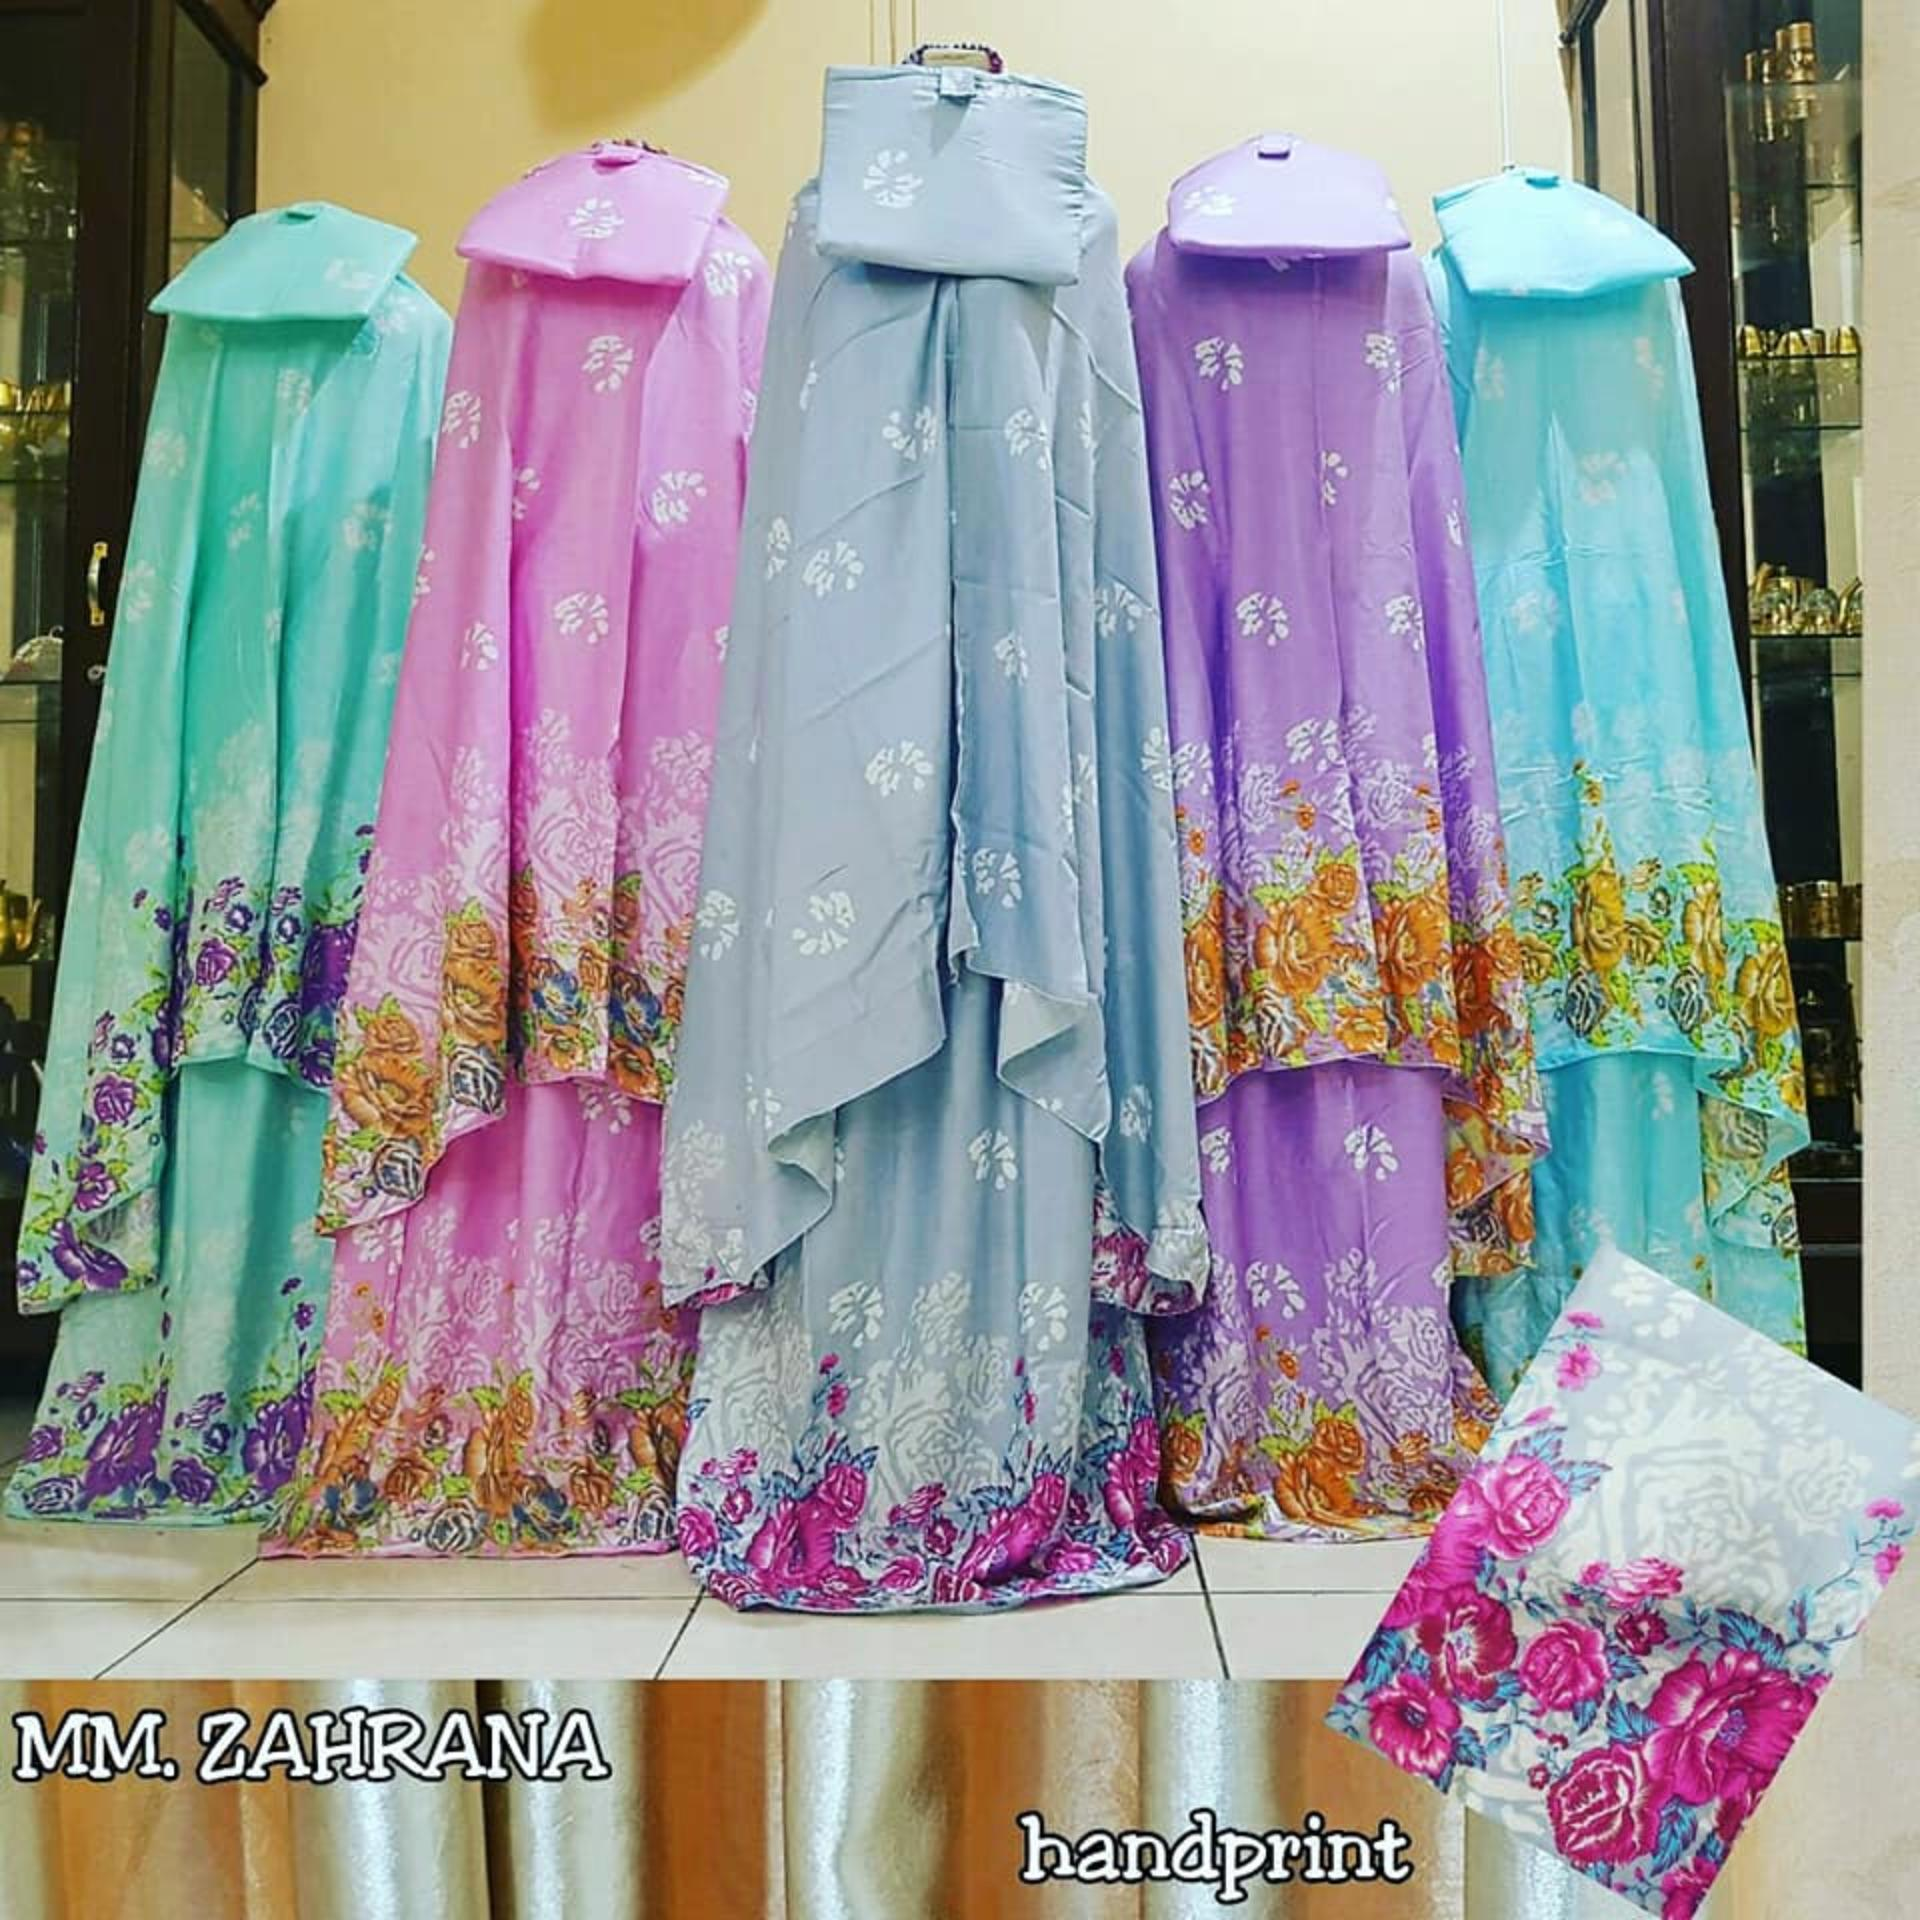 Ranaya Fashion - Mukena Bali Jumbo Super